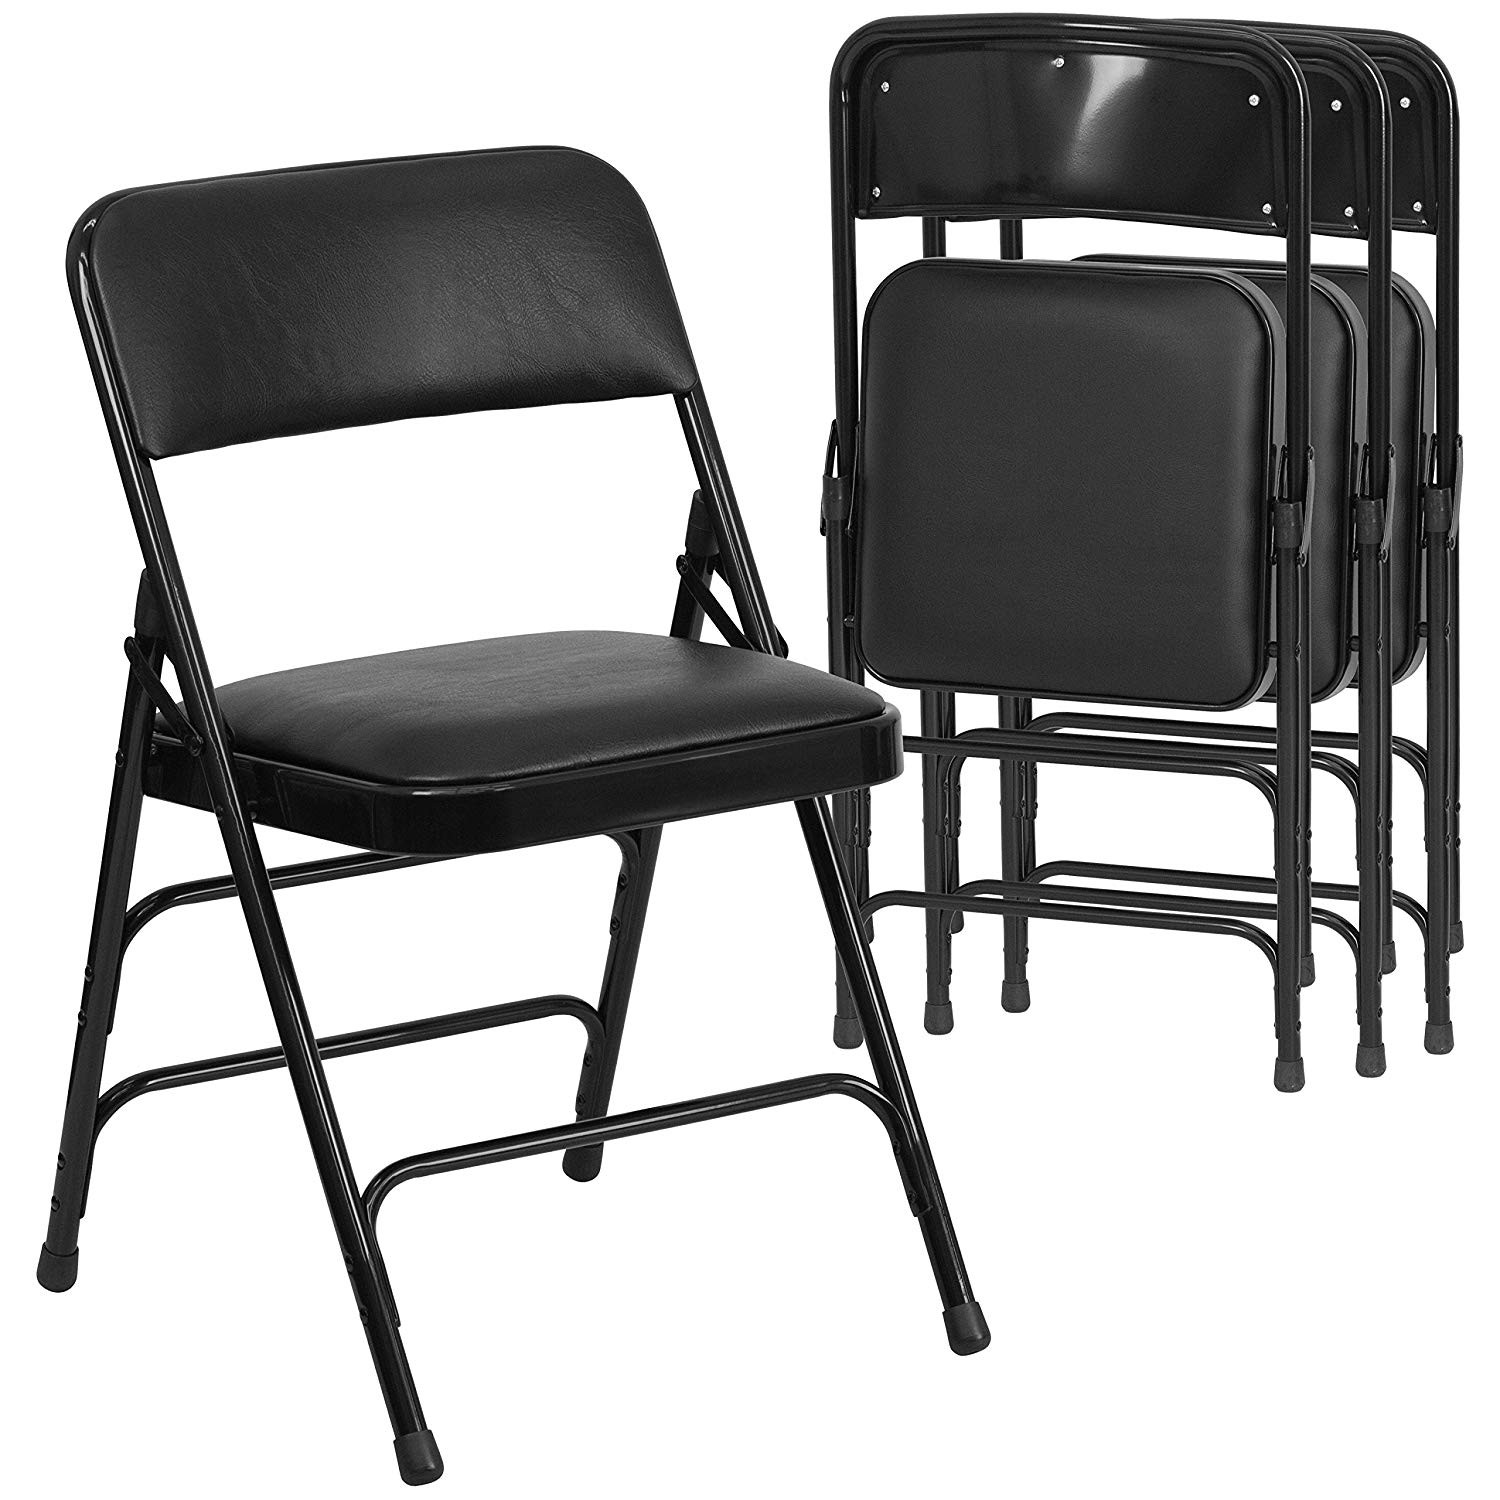 Folding Chair Executive Corporate Blue For Rent   Folding Chair Corporate  Black